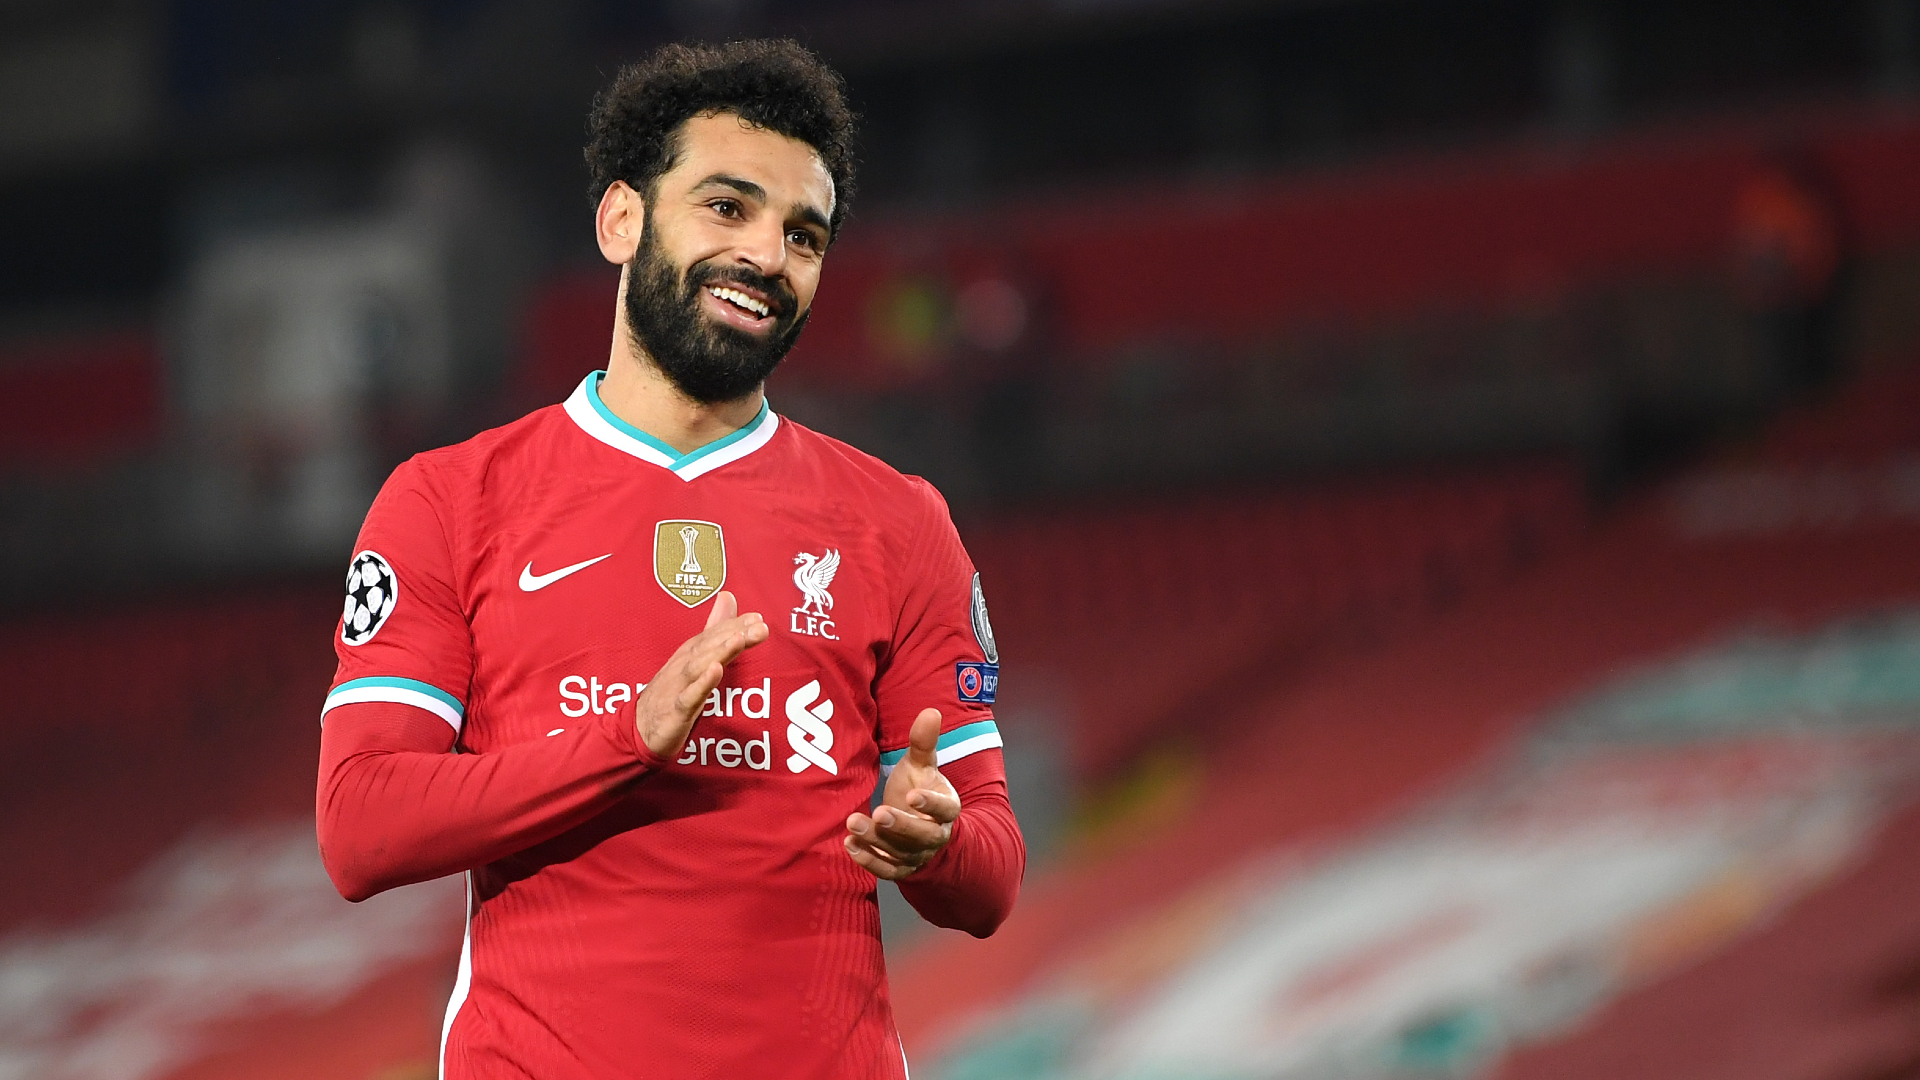 Salah is the Messi of Africa - Bayern Munich legend Rumminegge